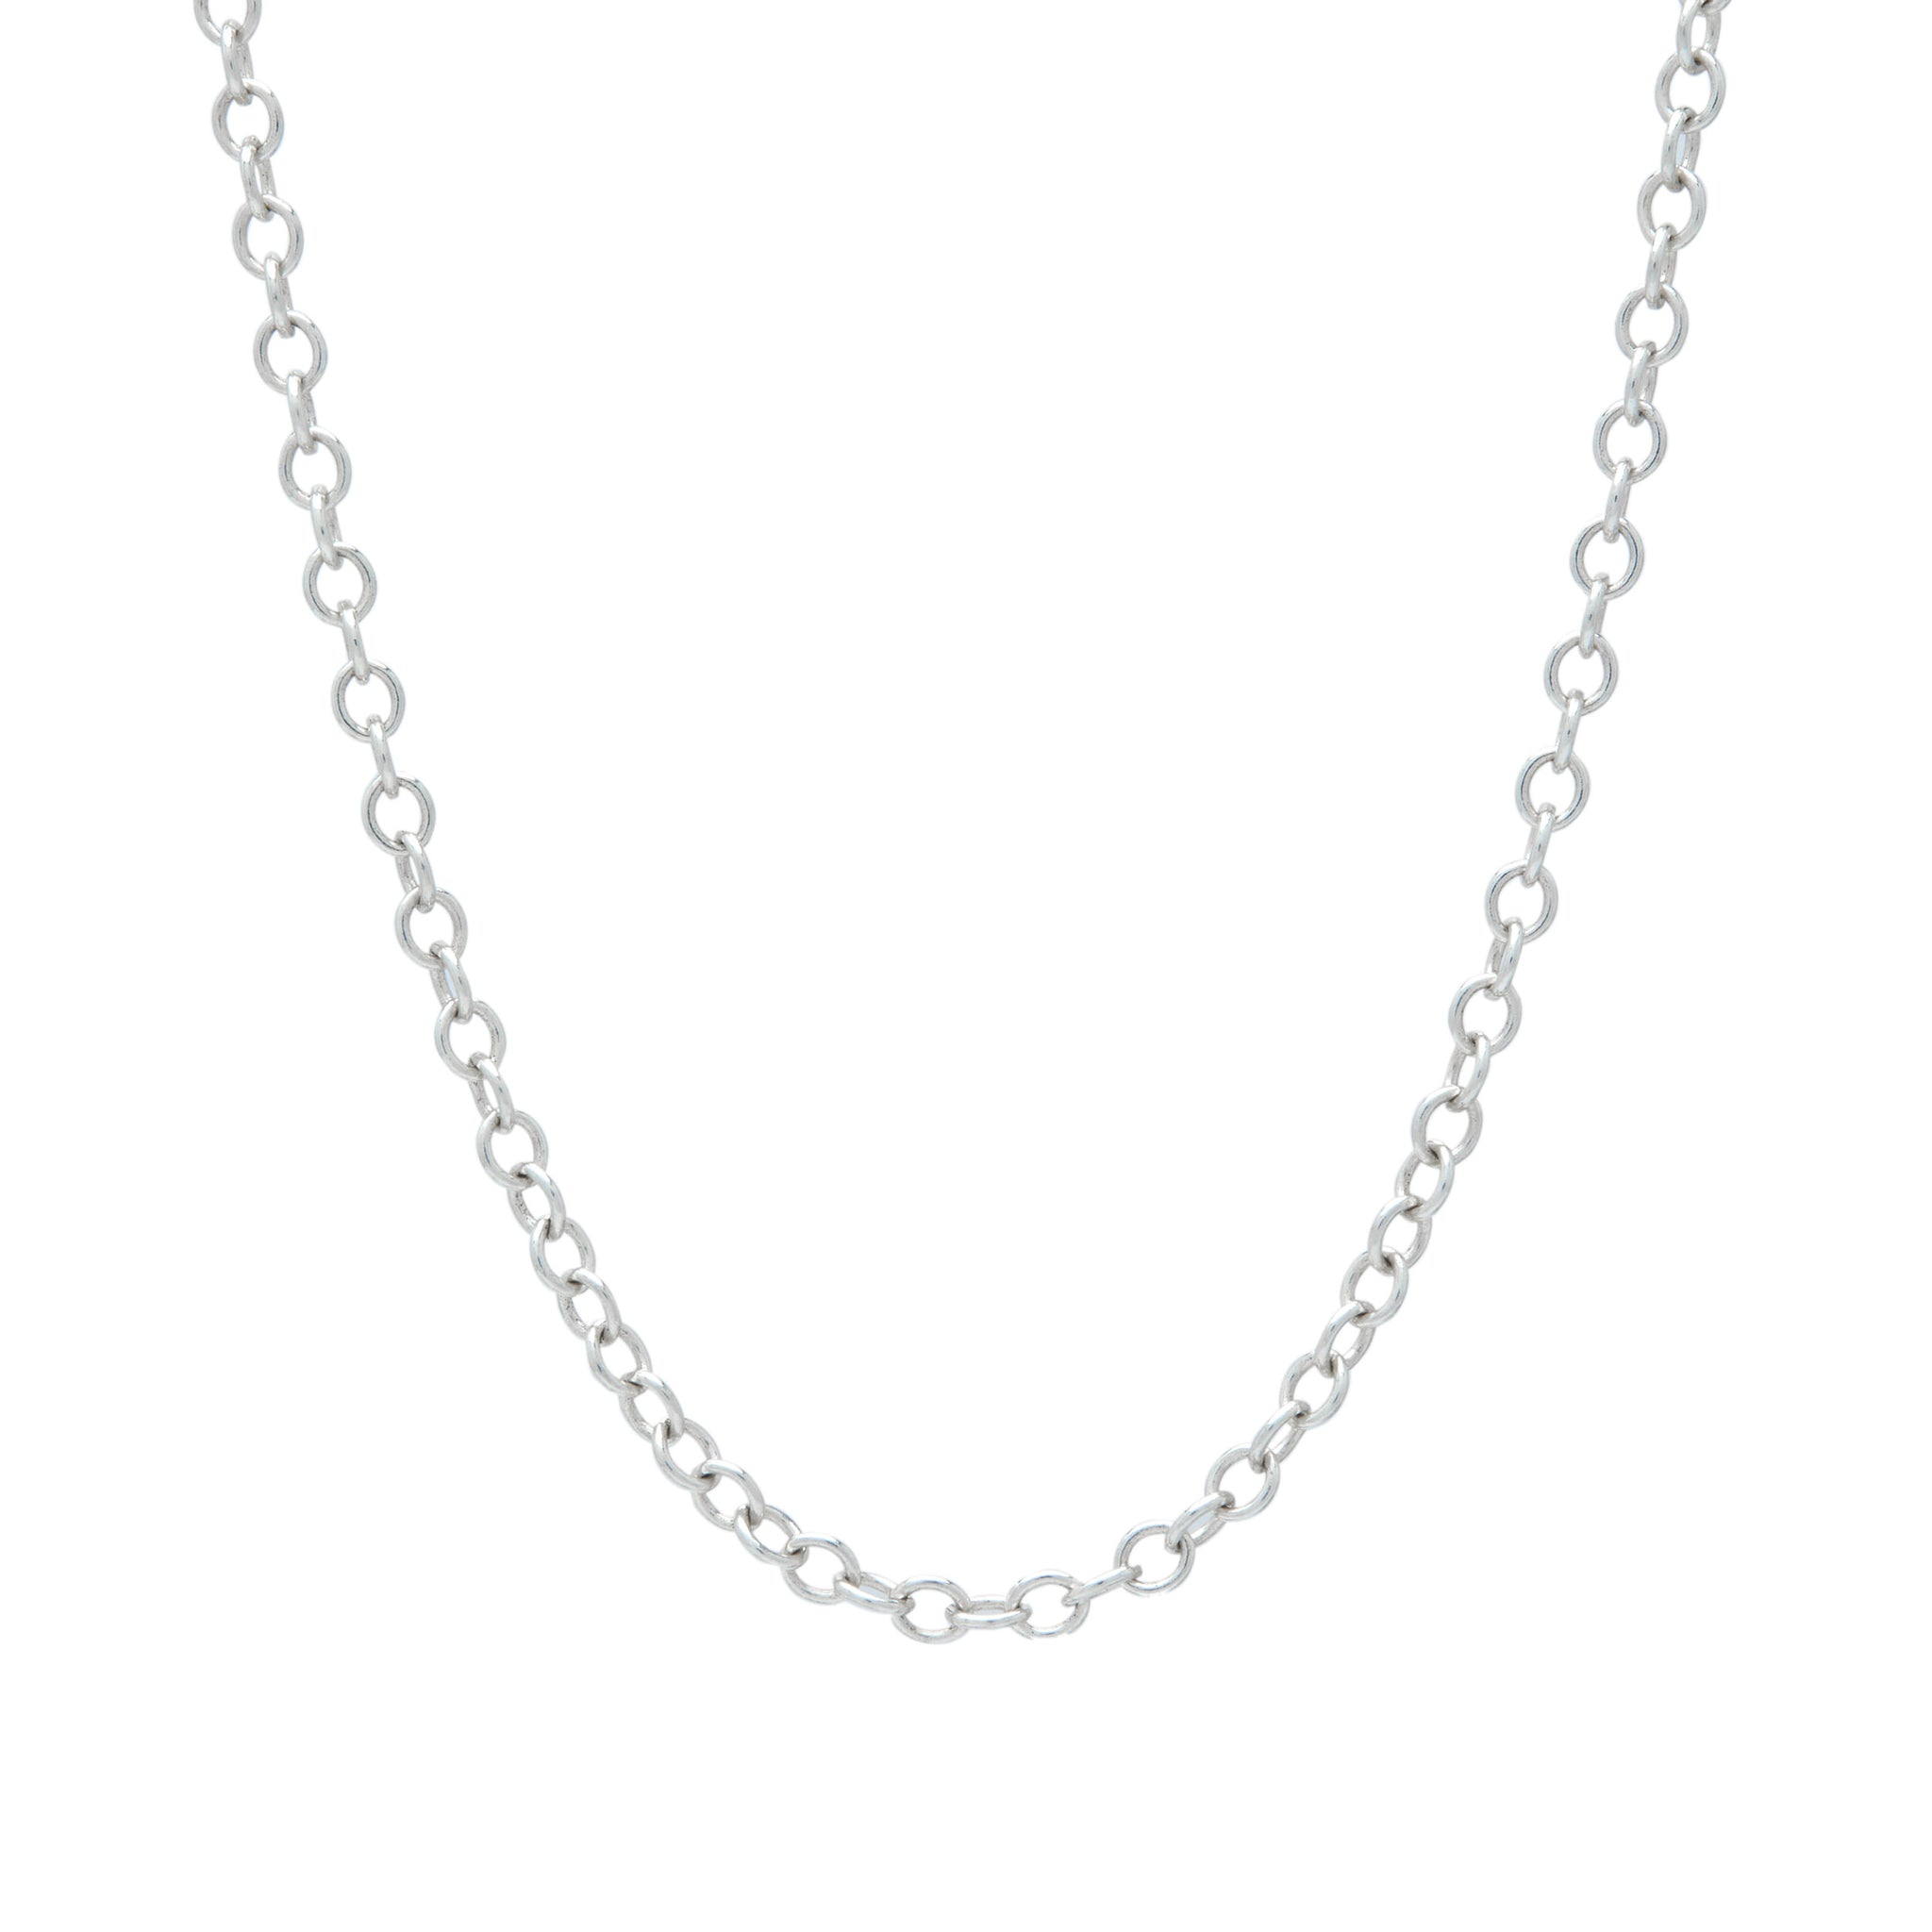 sterling silver oval link chain necklace custom necklace design charm necklace